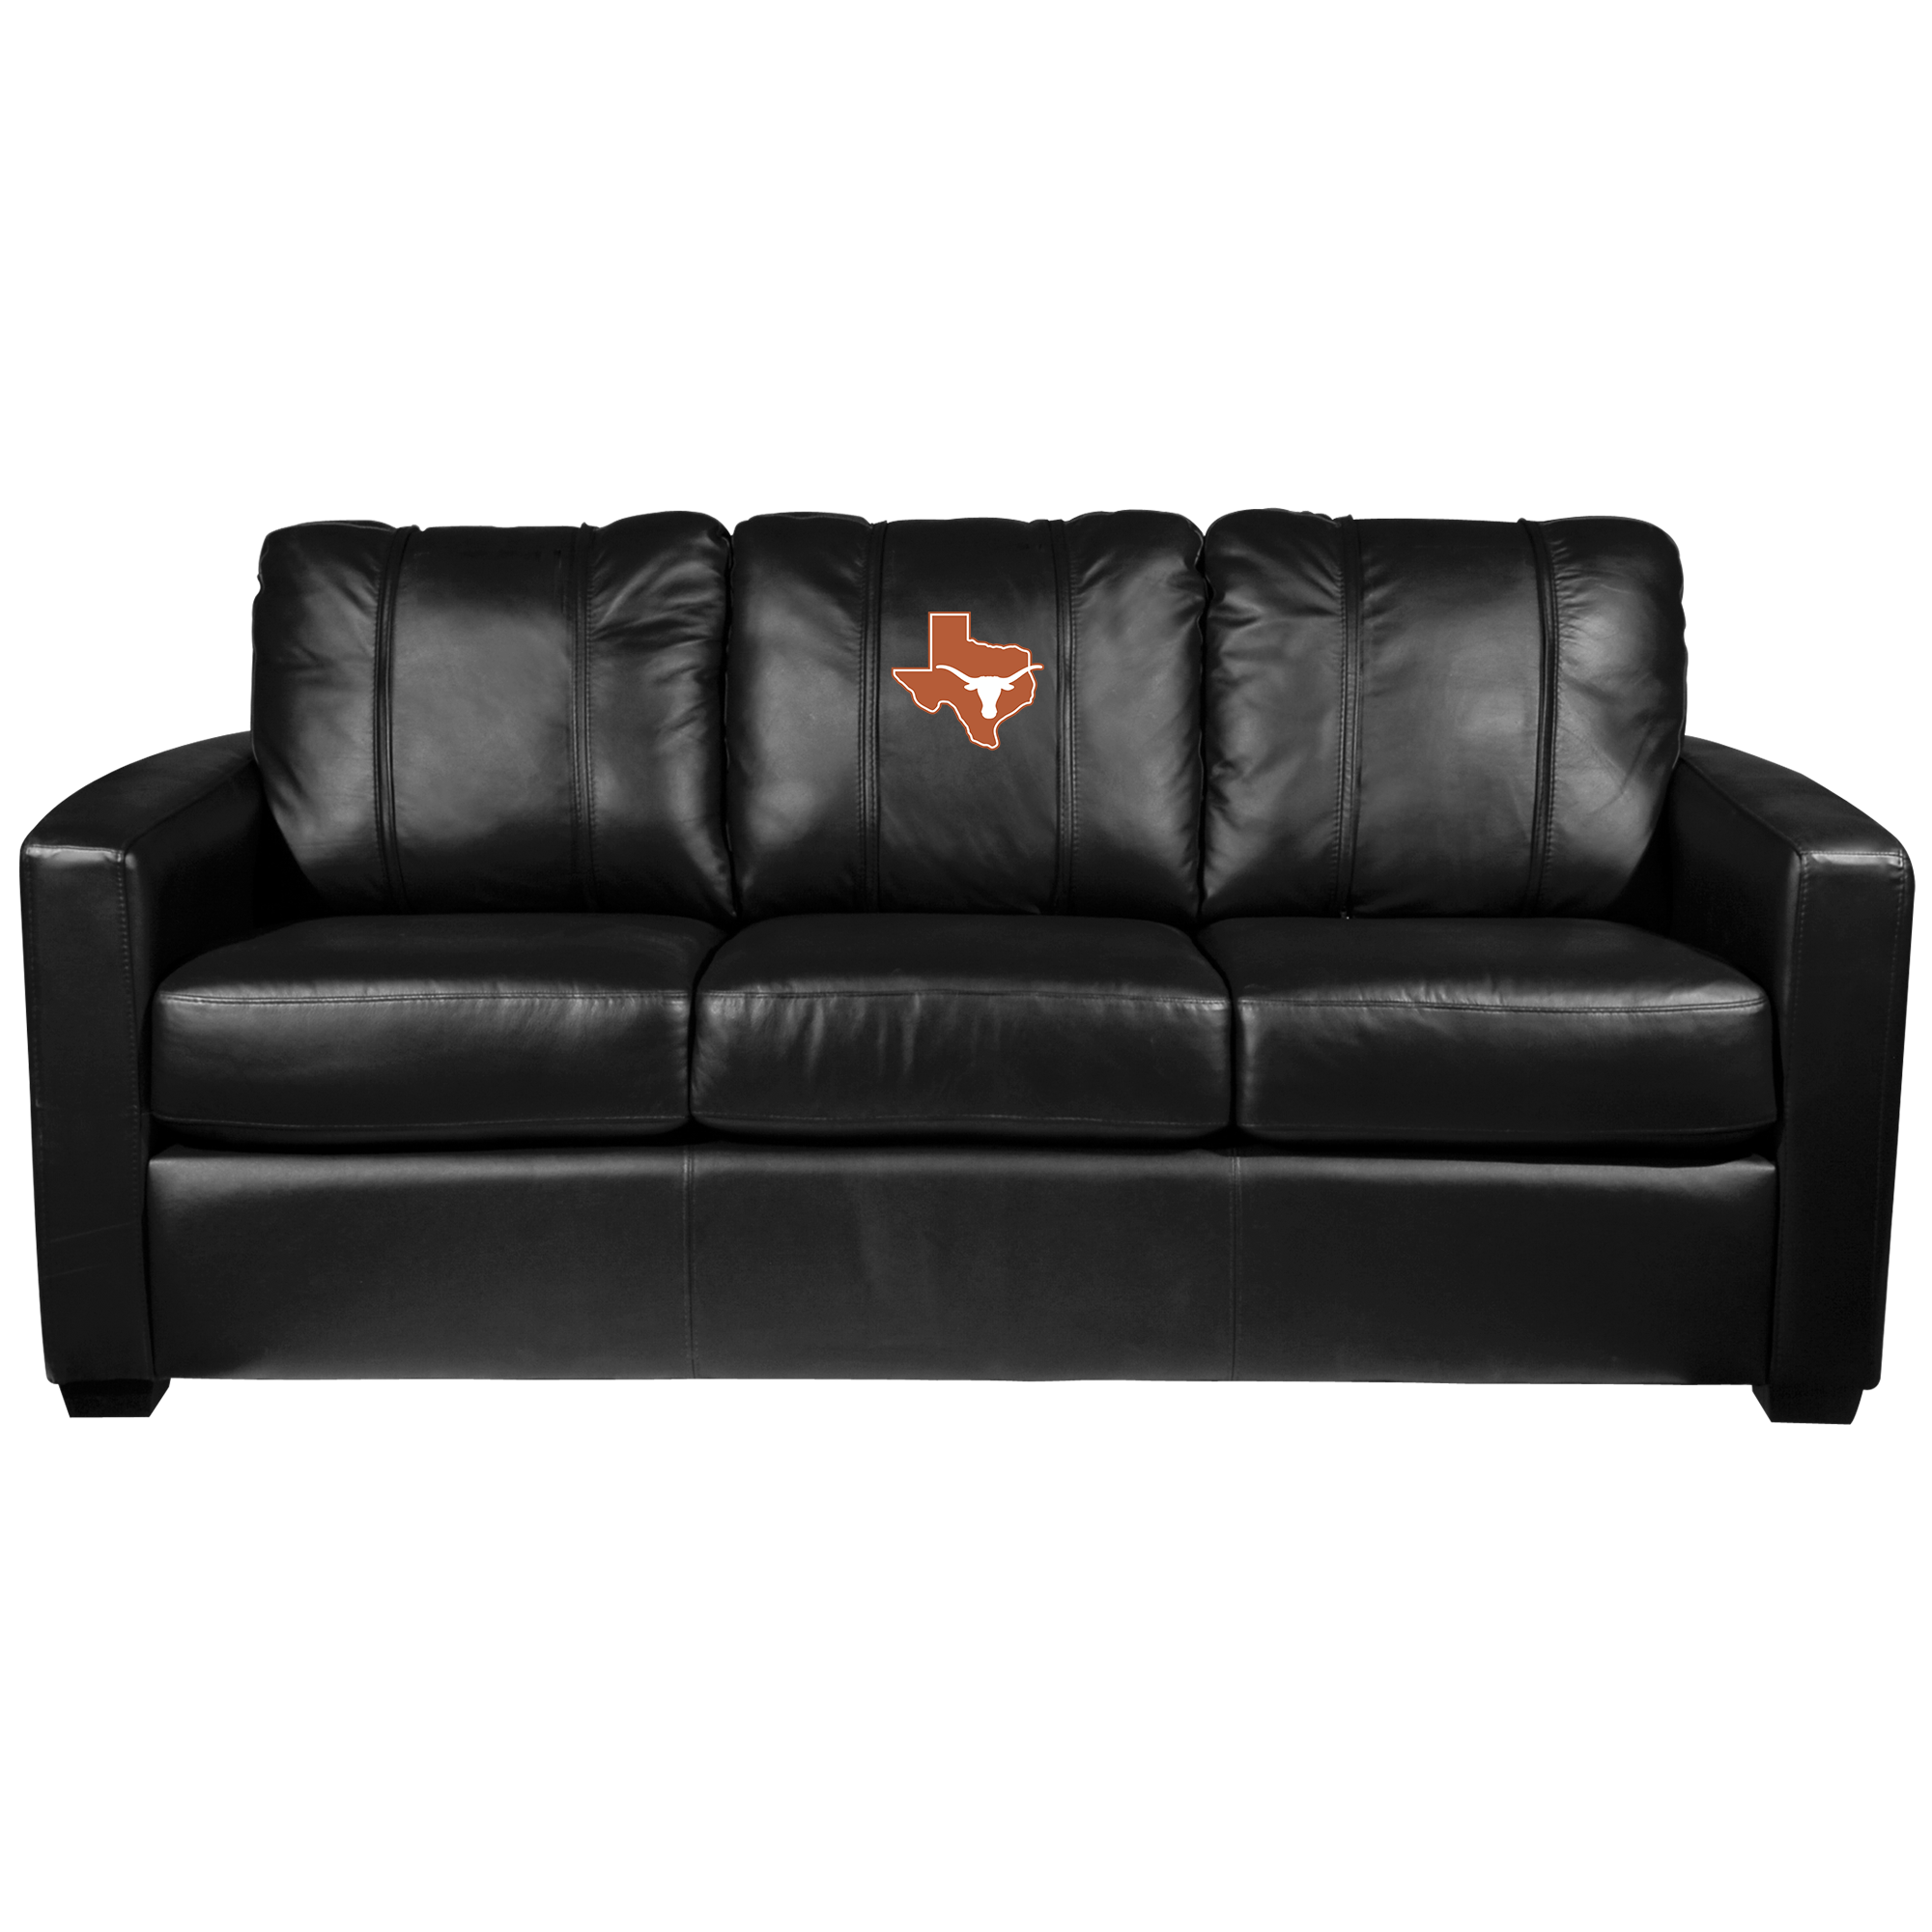 Silver Sofa with Texas Longhorns Secondary